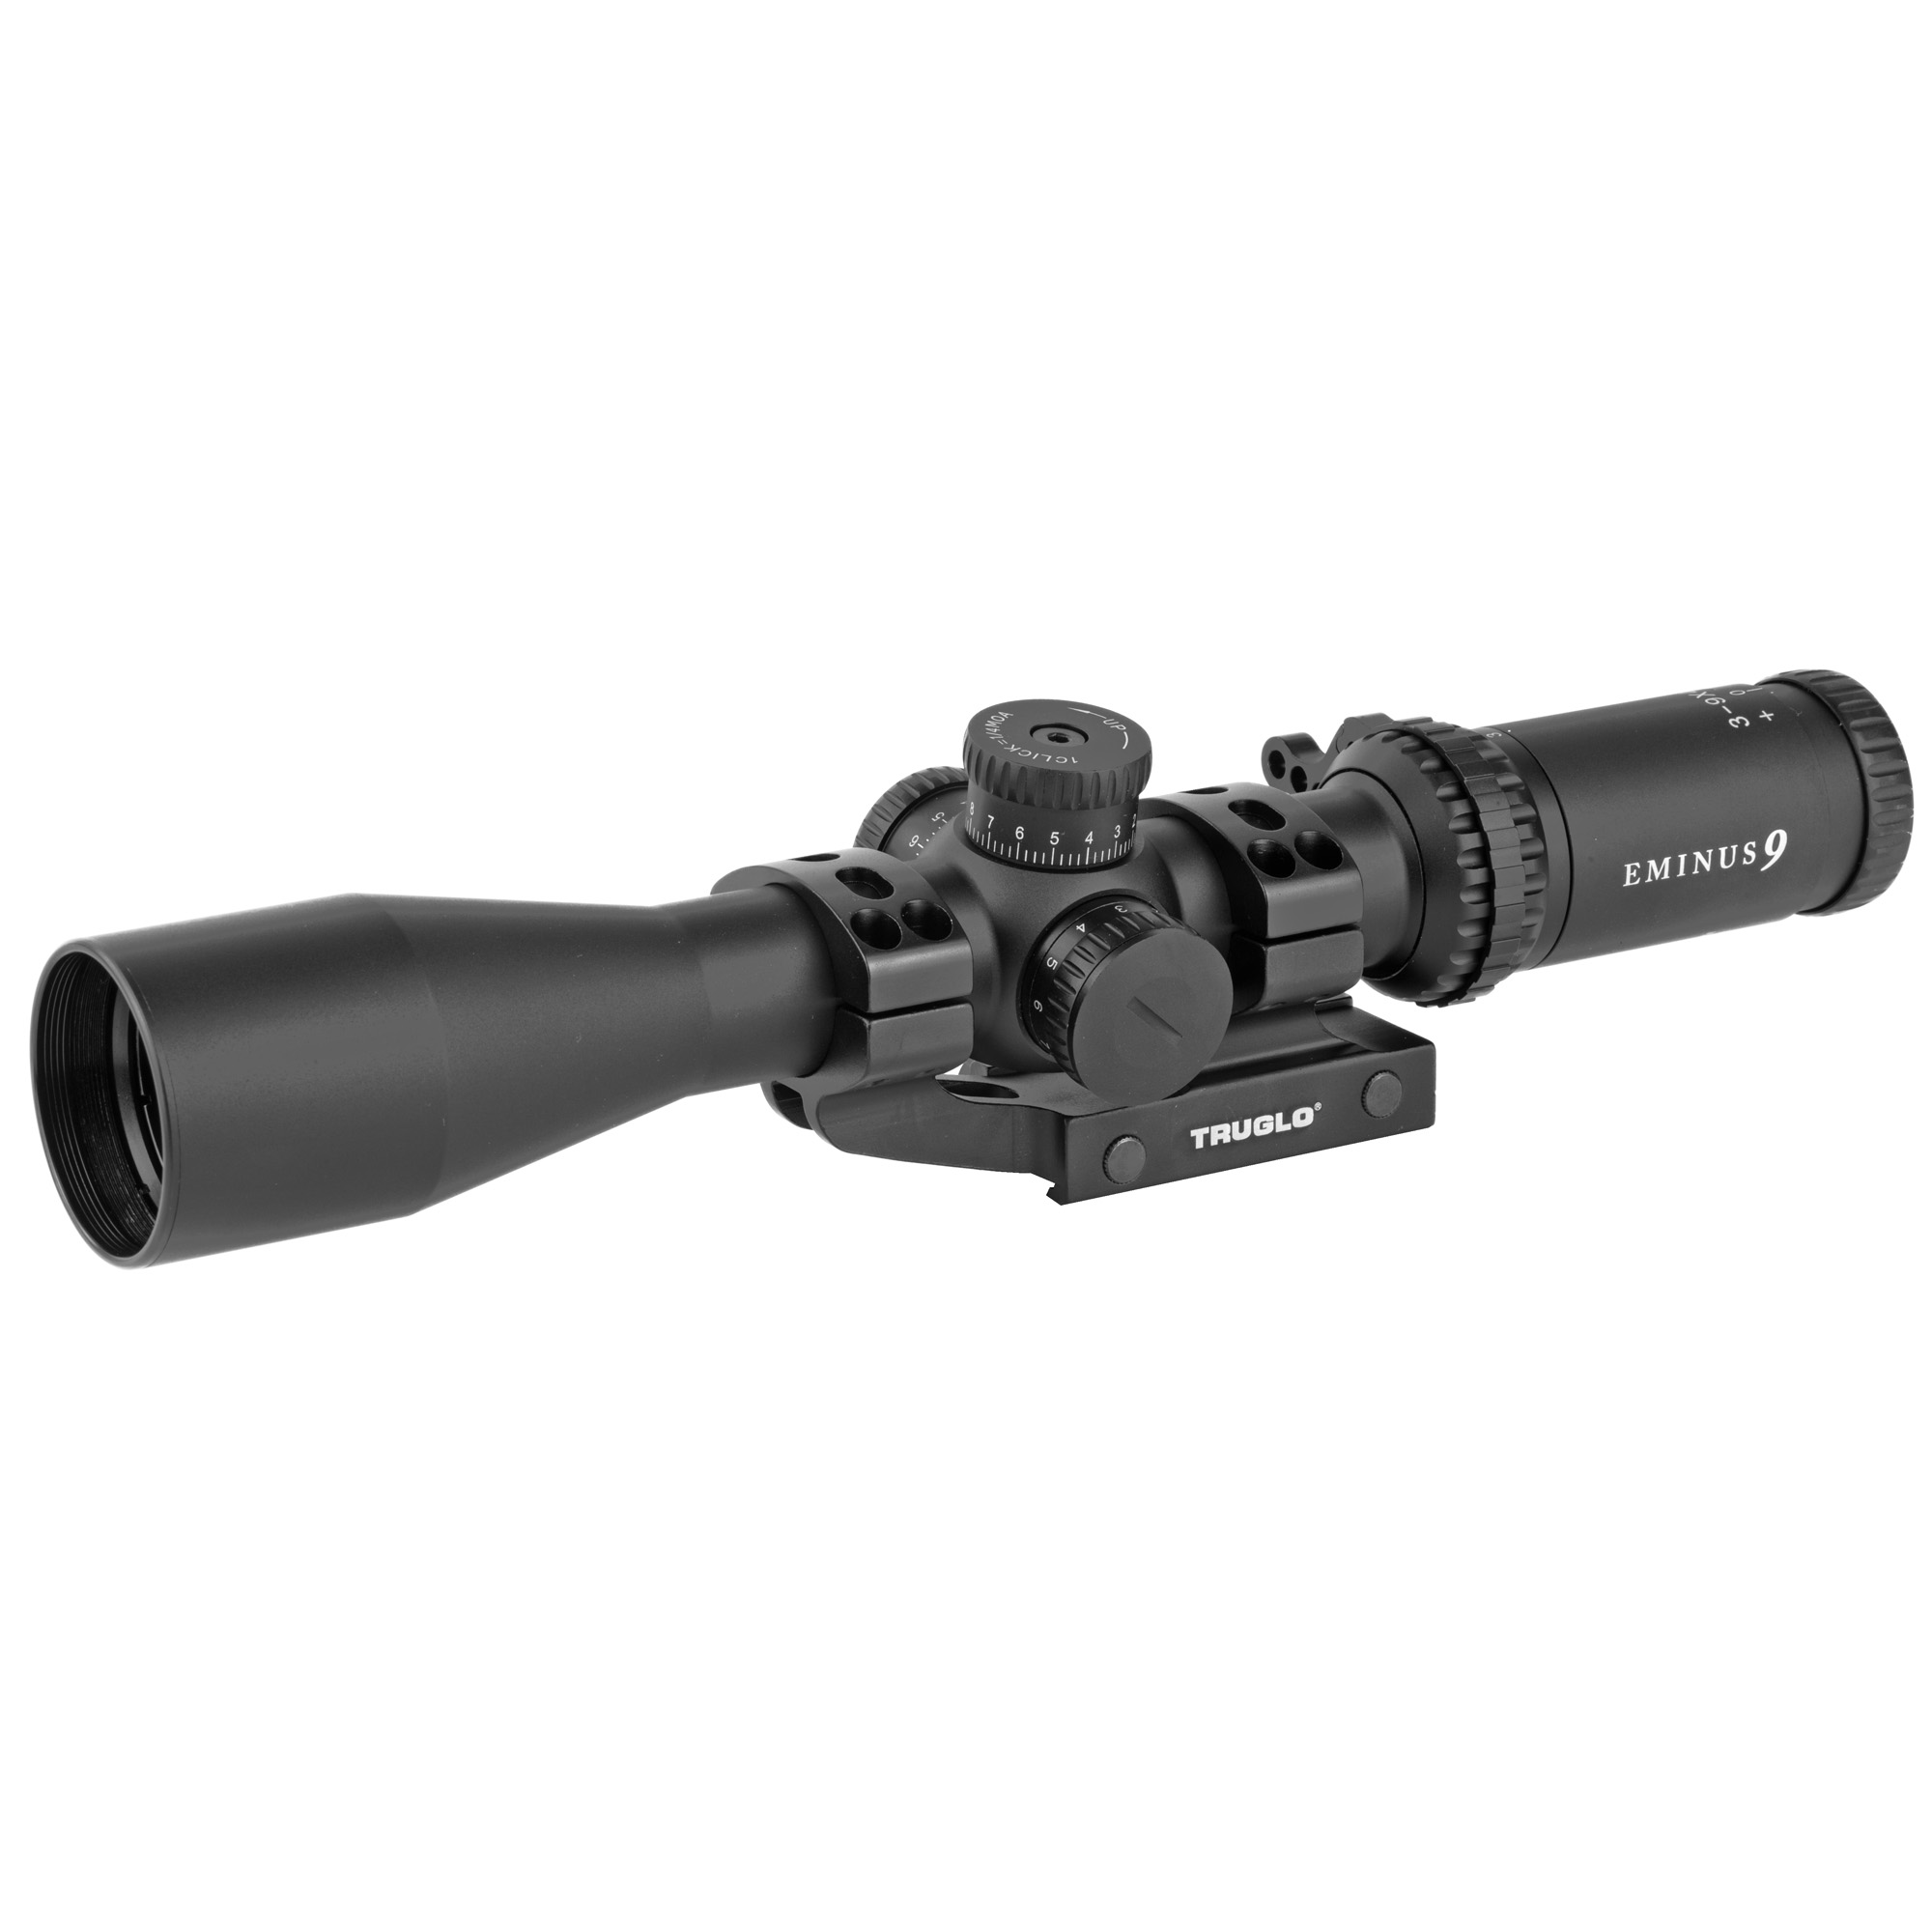 """Modern sporting rifles have come a long way in a short time-with accuracy"""" range"""" and price being better than ever. It is time for optics that not only keep up"""" but increase the potential of contemporary marksmen. EMINUS is designed as a perfect pairing to rifle builds tuned for accuracy and practicality. Quarter-MOA locking target turrets correspond easily to the Illuminated TacPlex Reticle for improved shot tracking"""" measurement and D.O.P.E. dialing."""